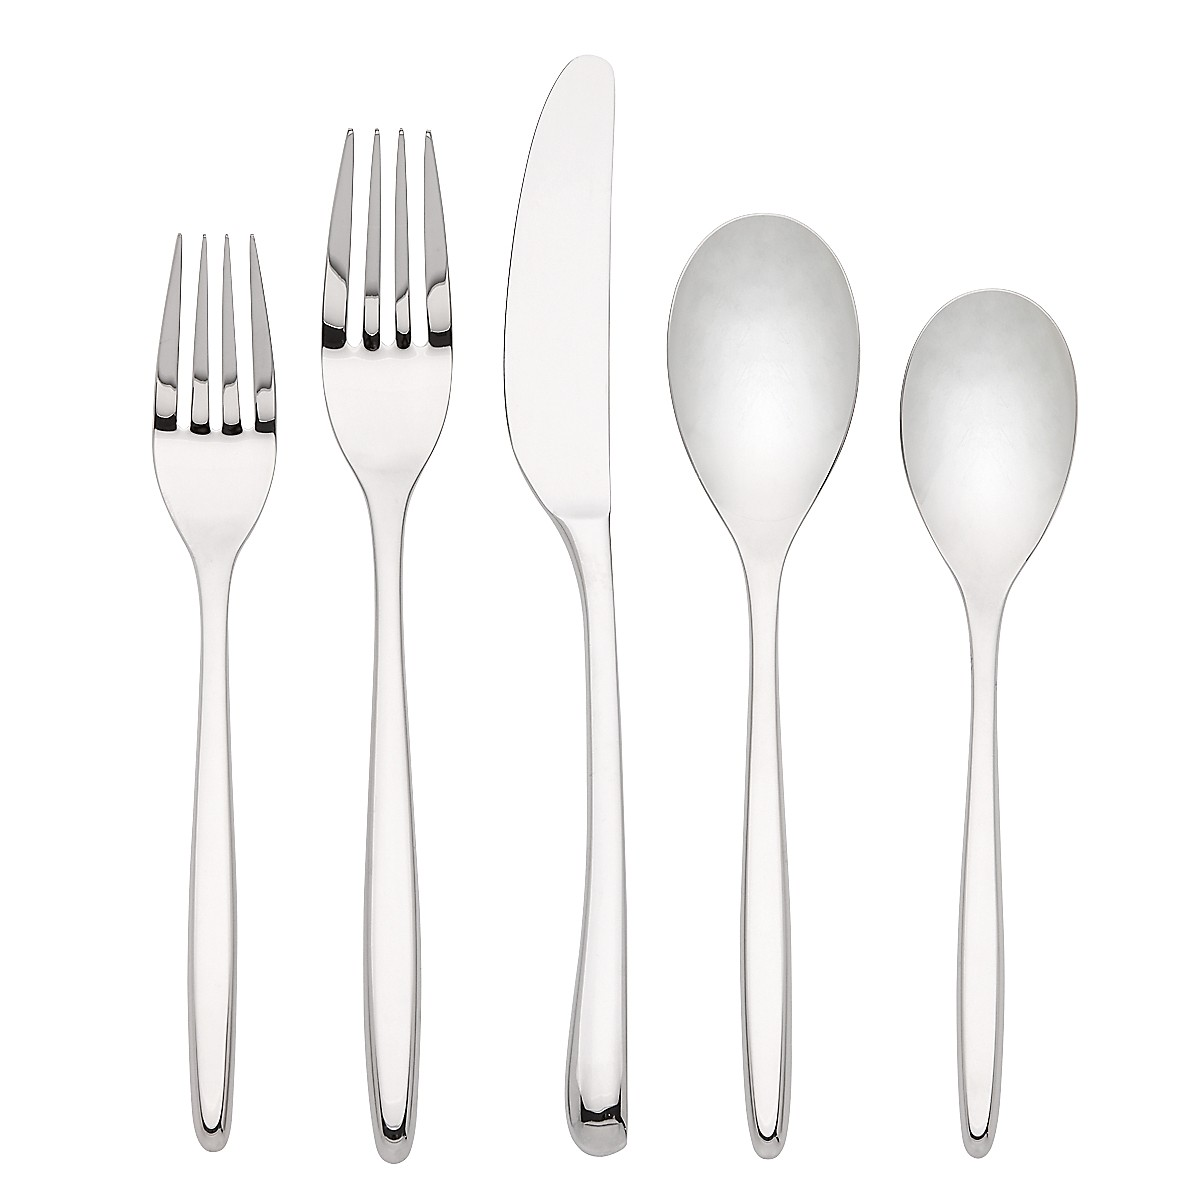 Stainless steel cutlery with ceramic handle/decal print porcelain handle cutlery